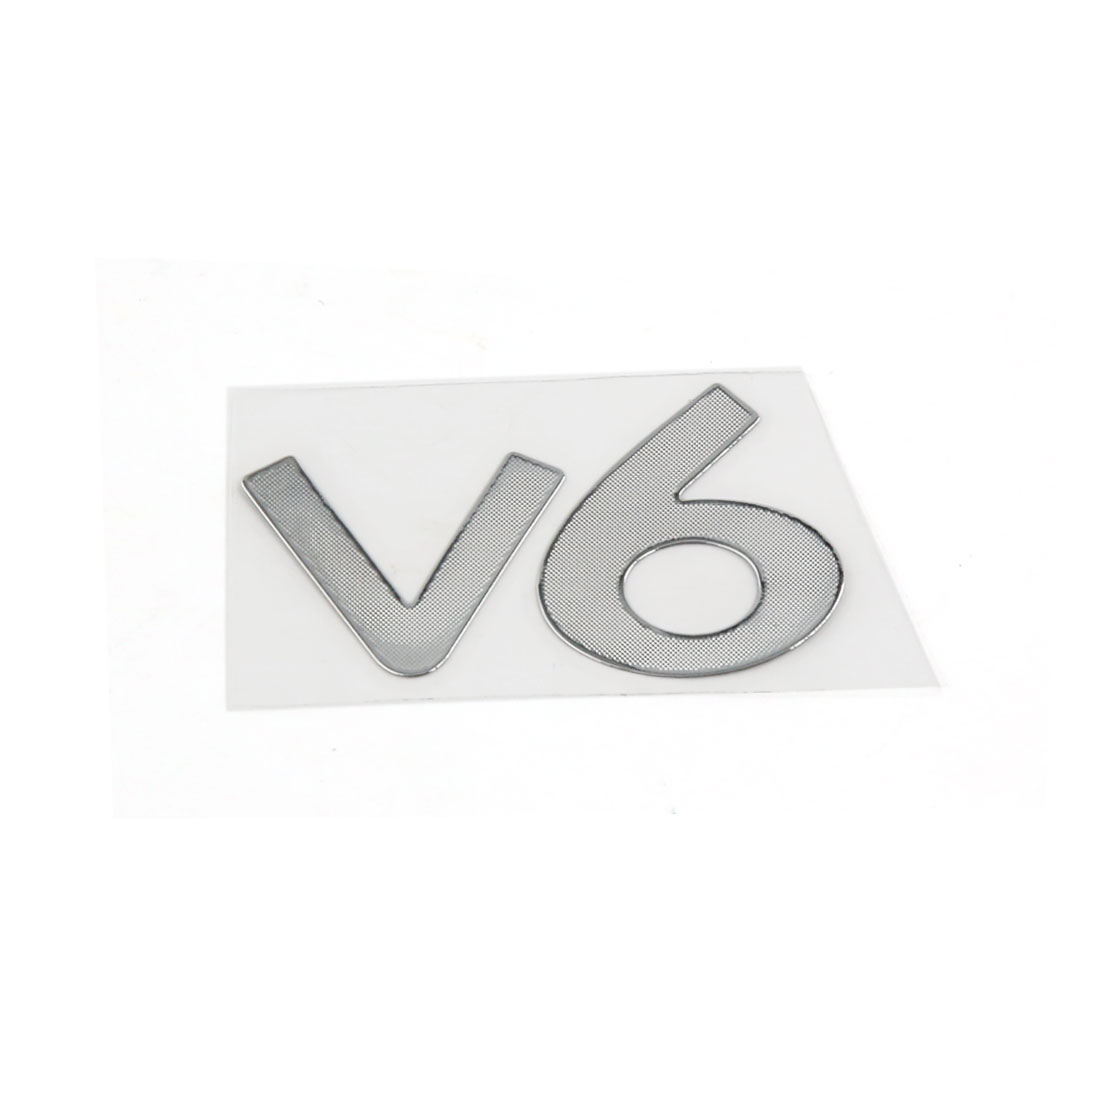 V6 Shaped Metal Adhesive Sticker Graphic Decal Adorn for Car Wondow Door